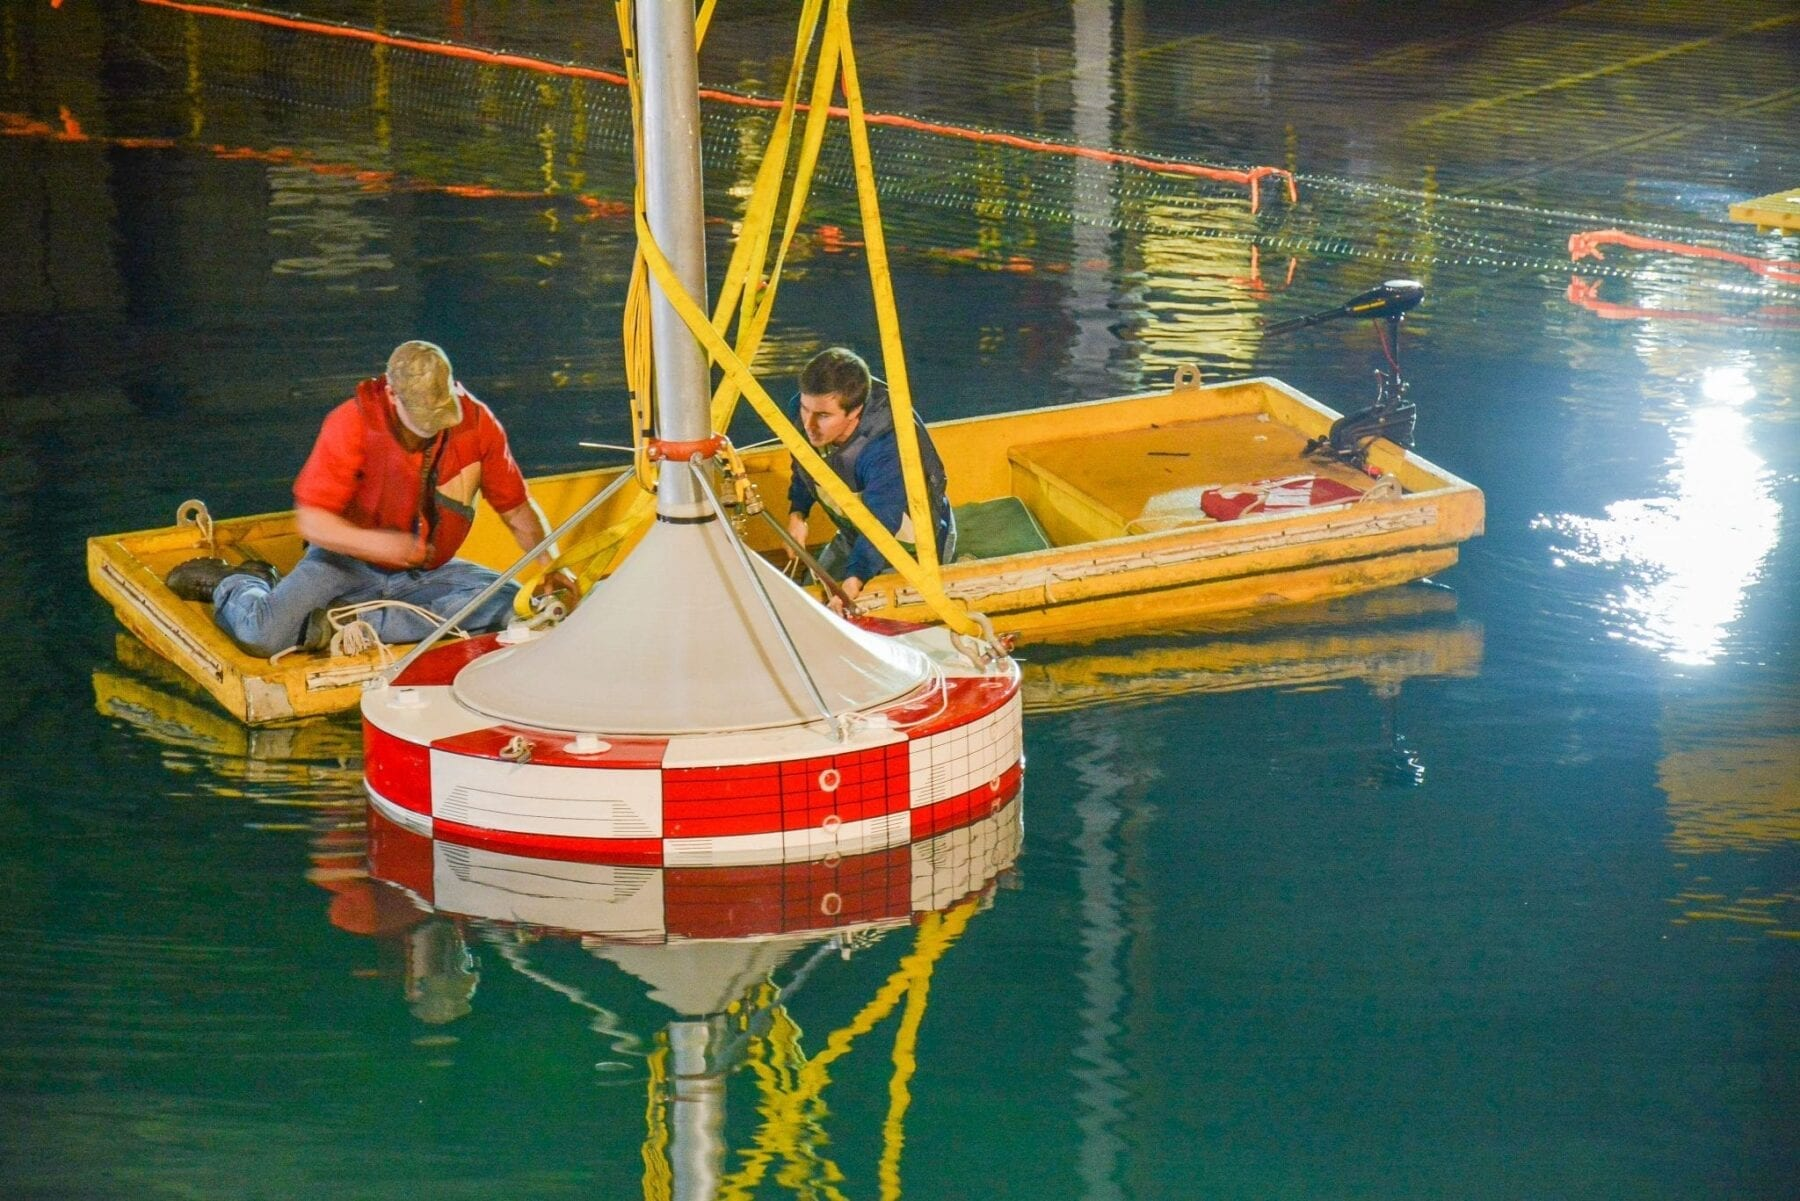 Wave energy researchers dive deep to advance clean energy source